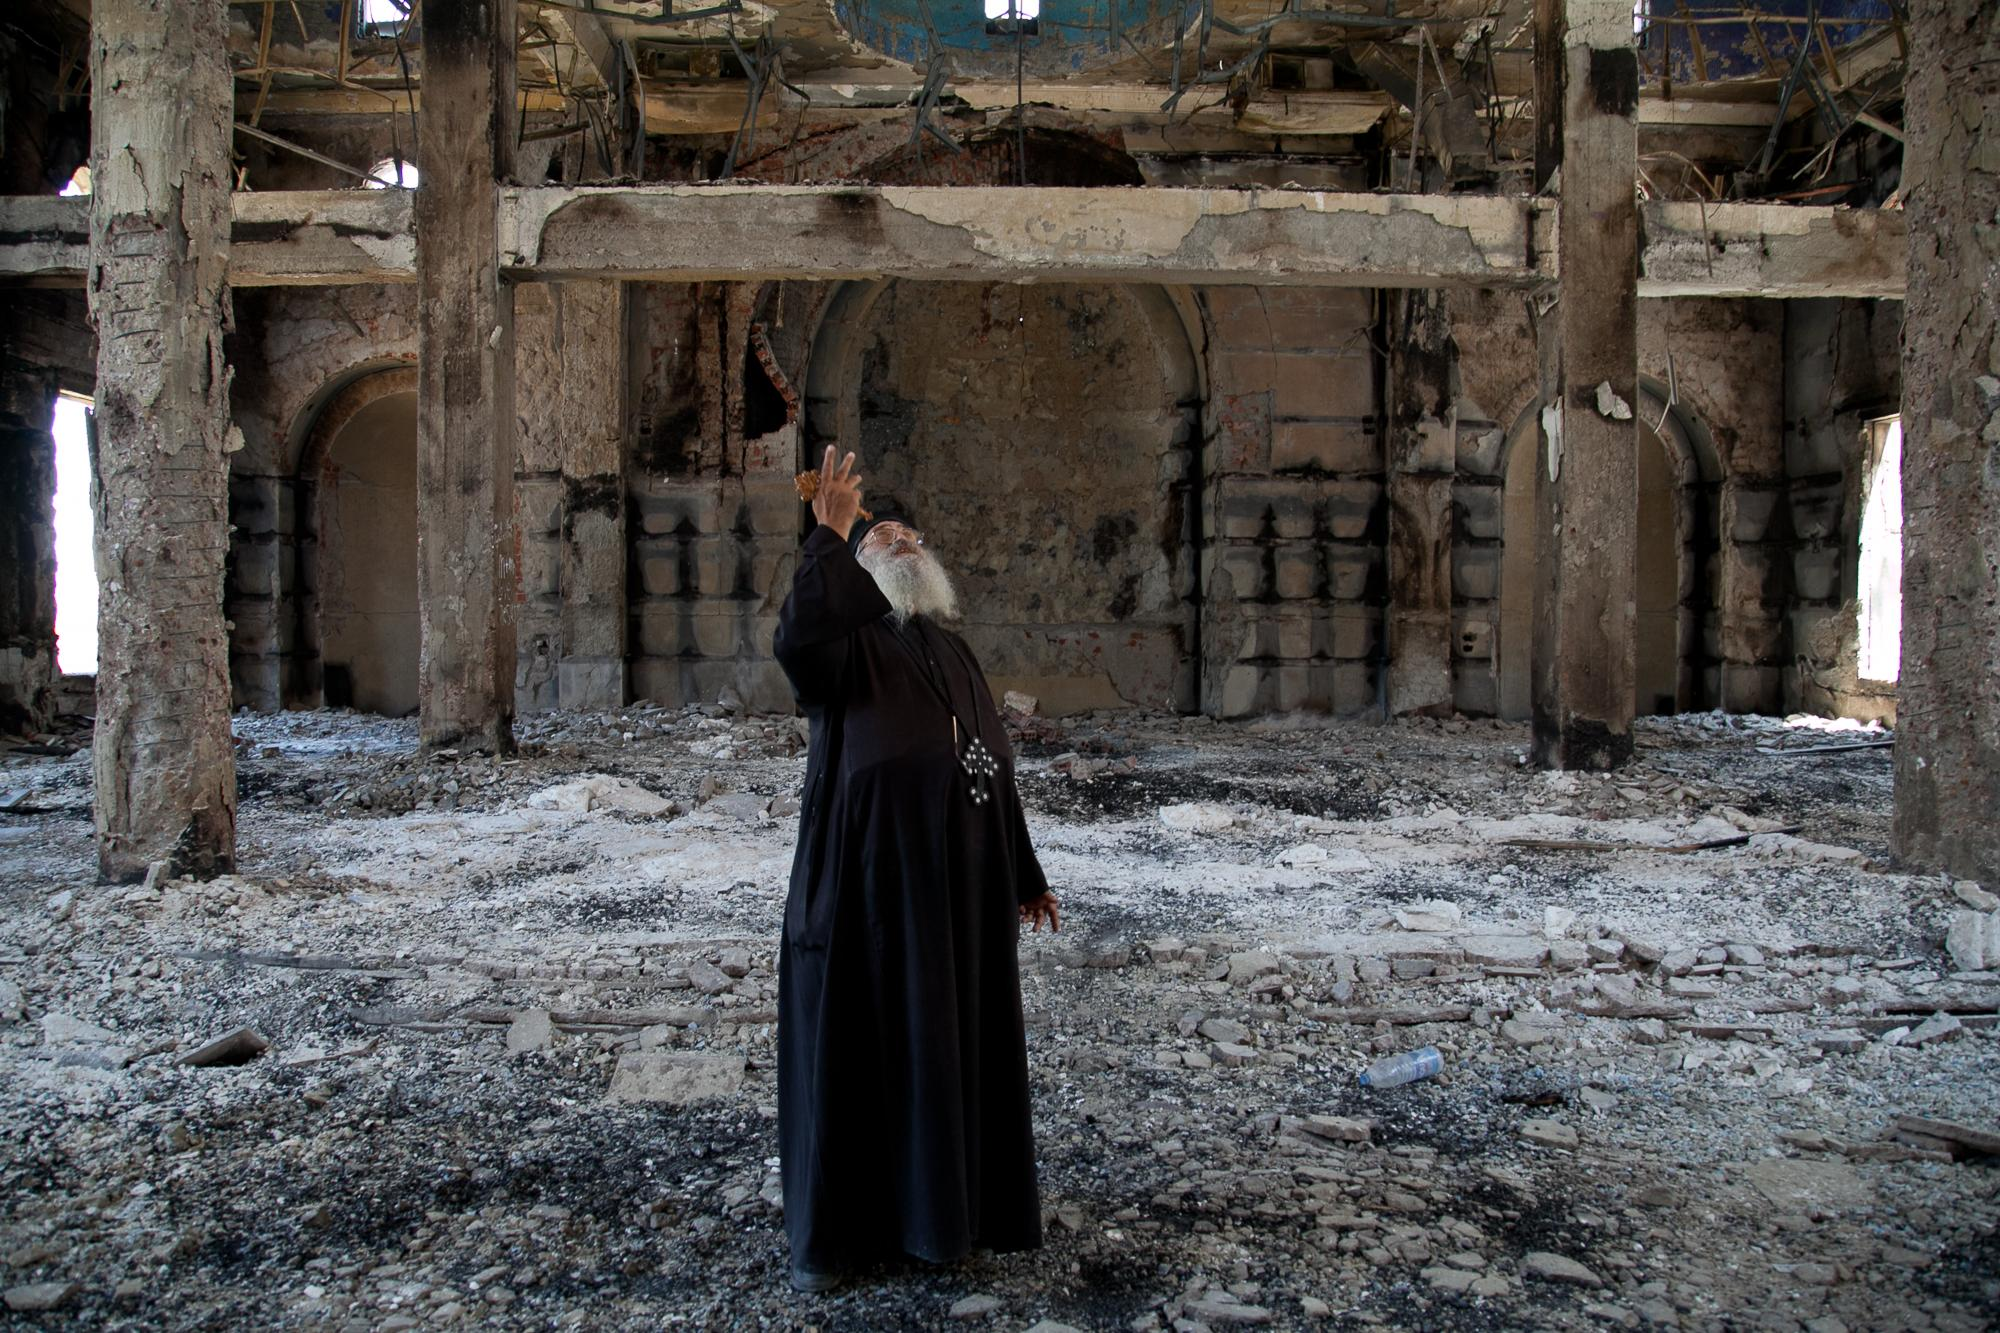 Al-Anba Mousa church in Minya was attacked by groups of men on August 14, 2013, who were pro-Mohamed Morsi supporters. Father Samuel Aziz Abdou looks up holding his cross in disbelief.